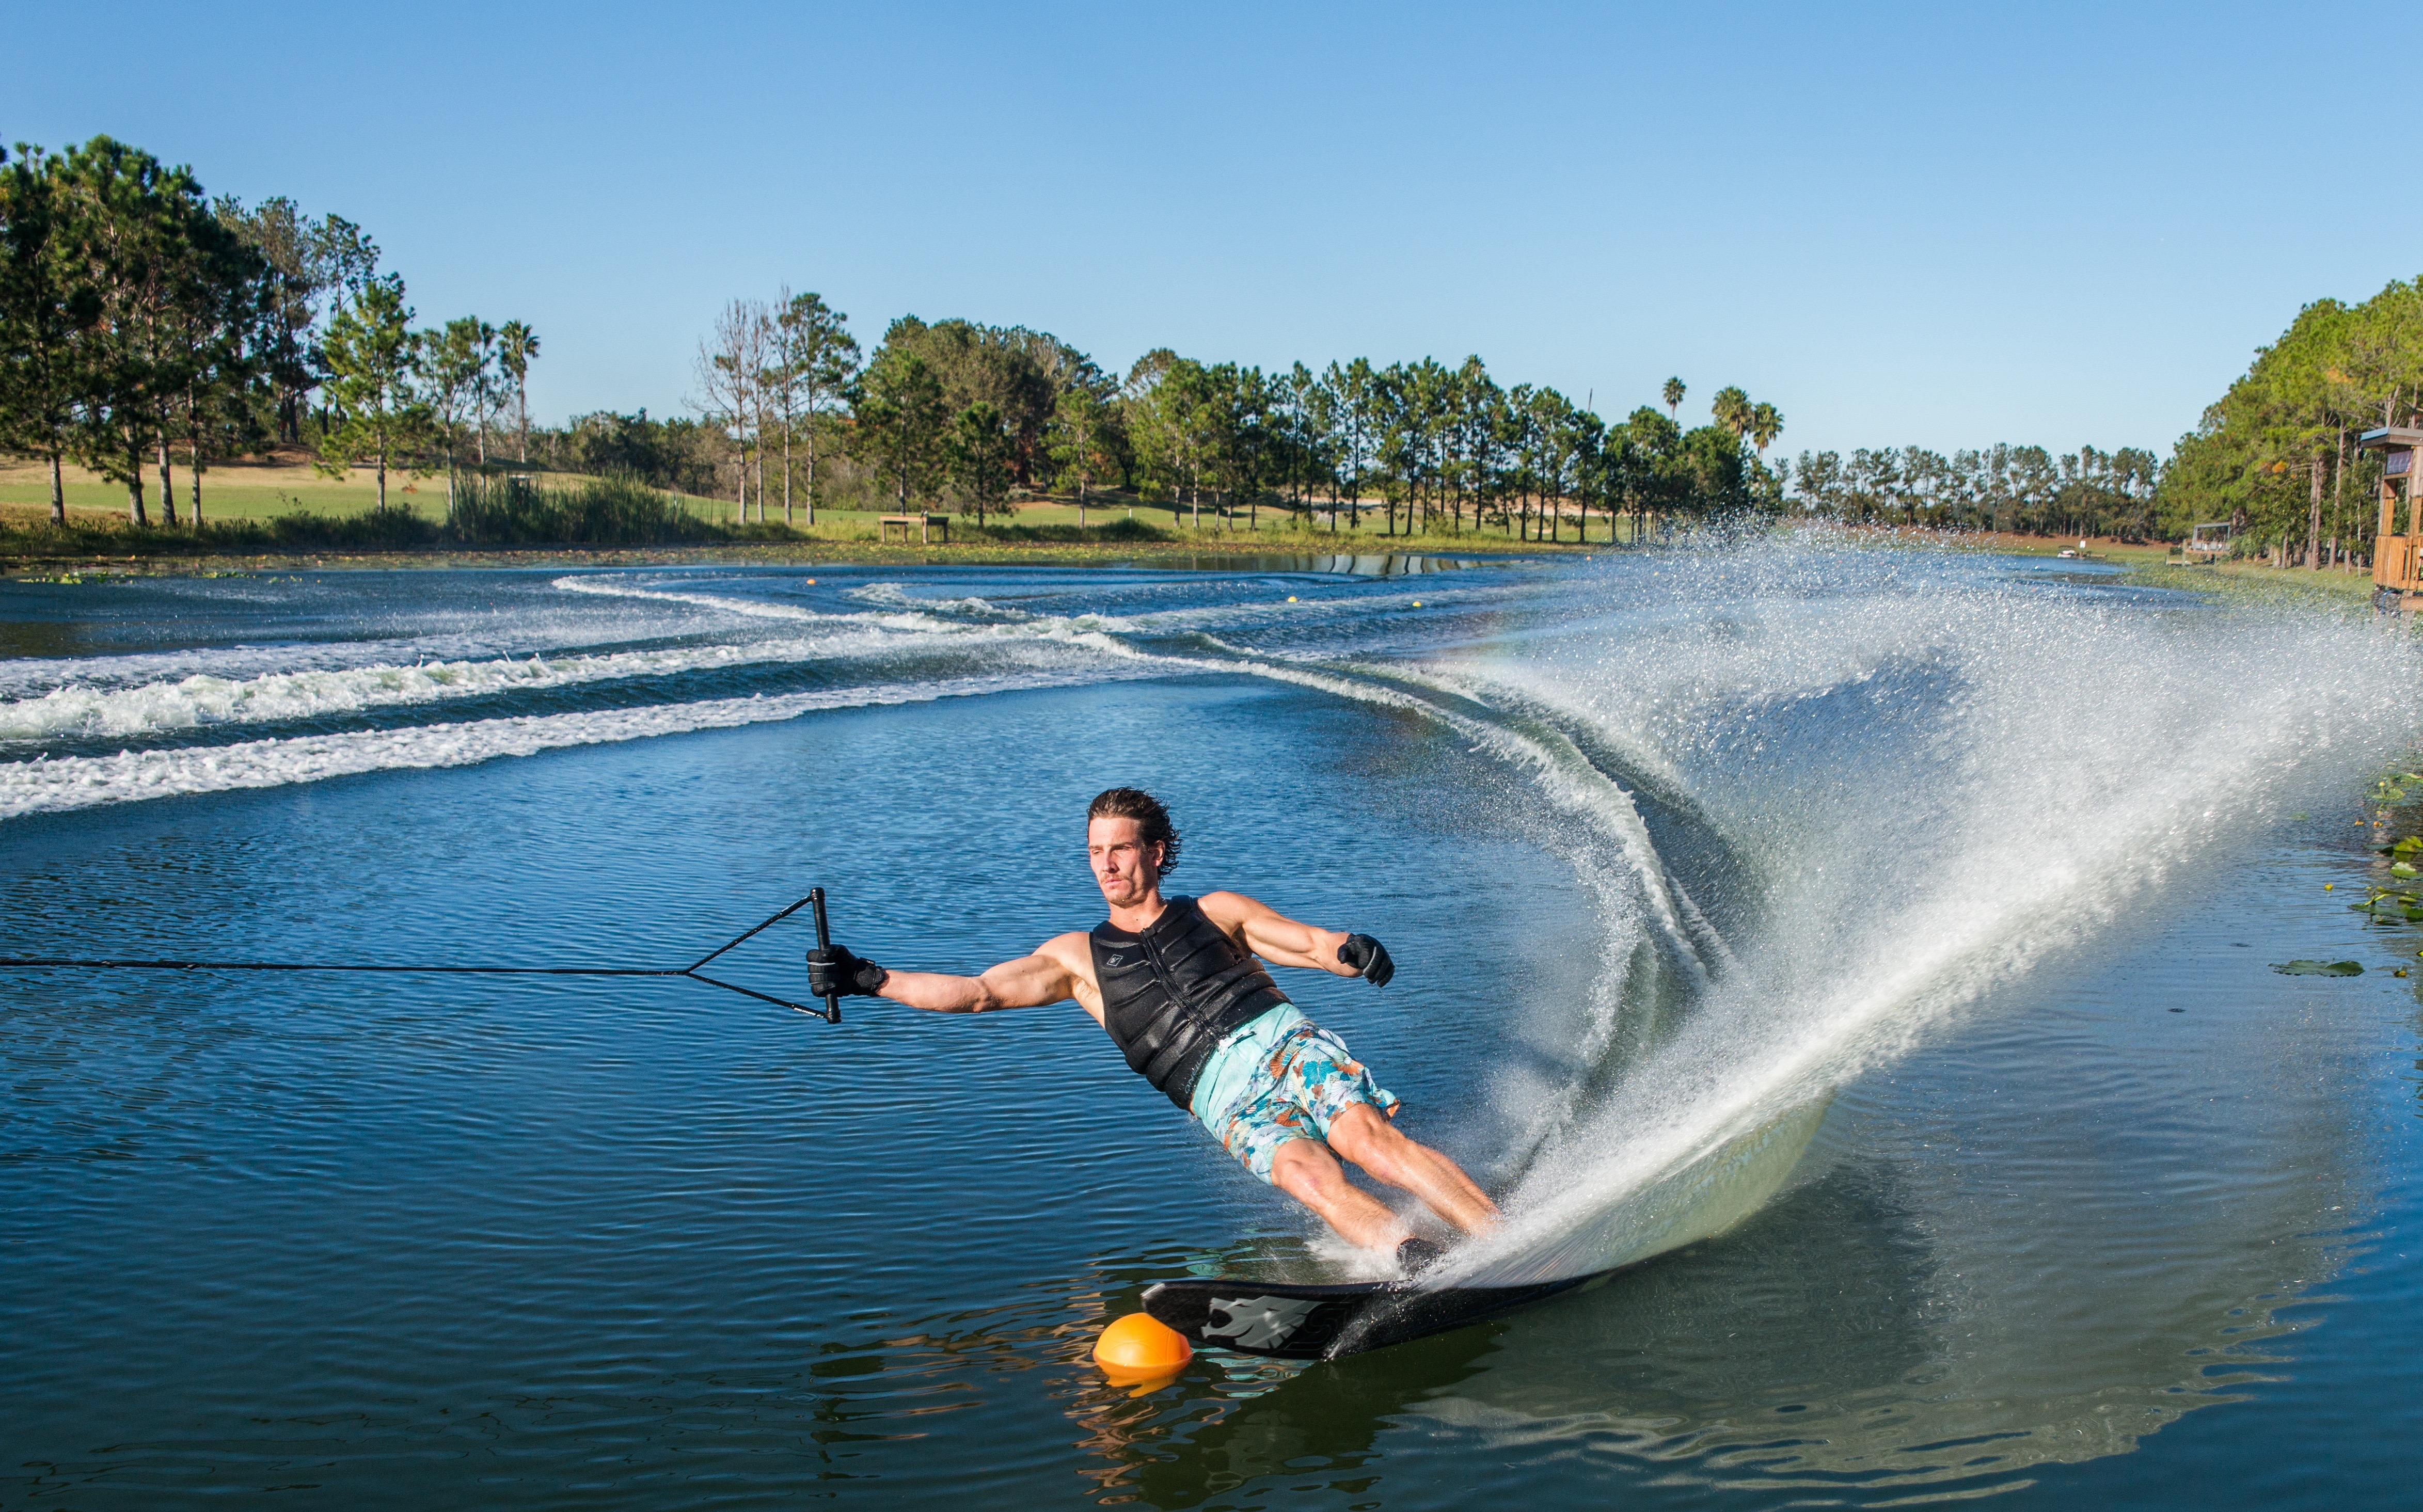 Ripping through his homelake, Swiss Waterski Resort in Clermont, FL Photo: Vincent Stadlbaur